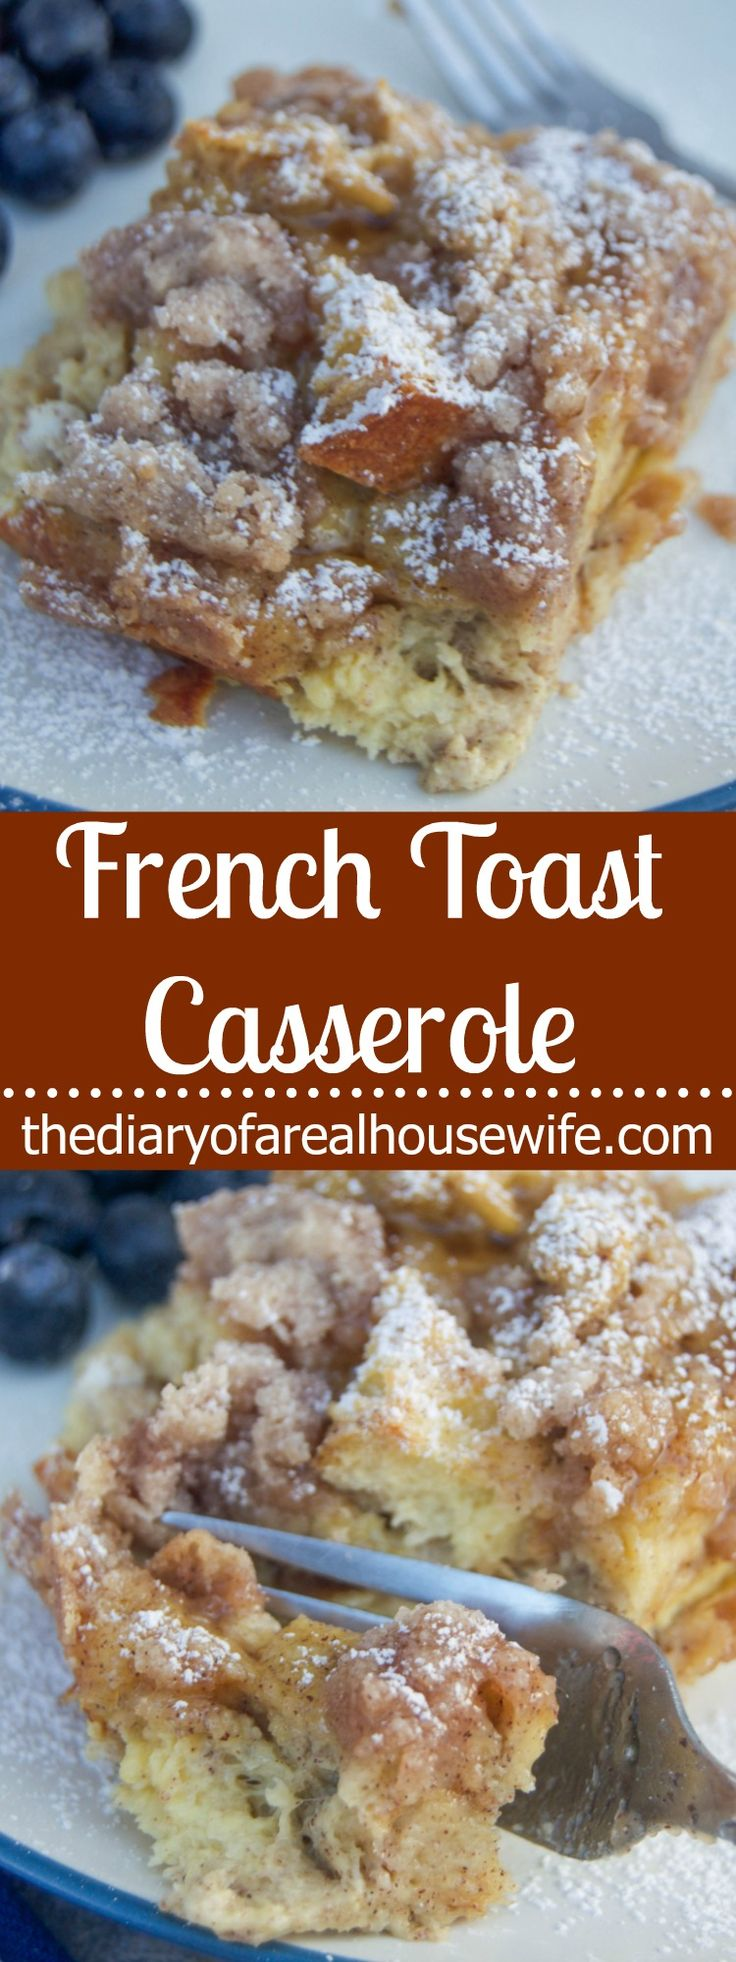 French Toast Casserole. So simple and easy to make! Plus this recipe can be finished in an hour!